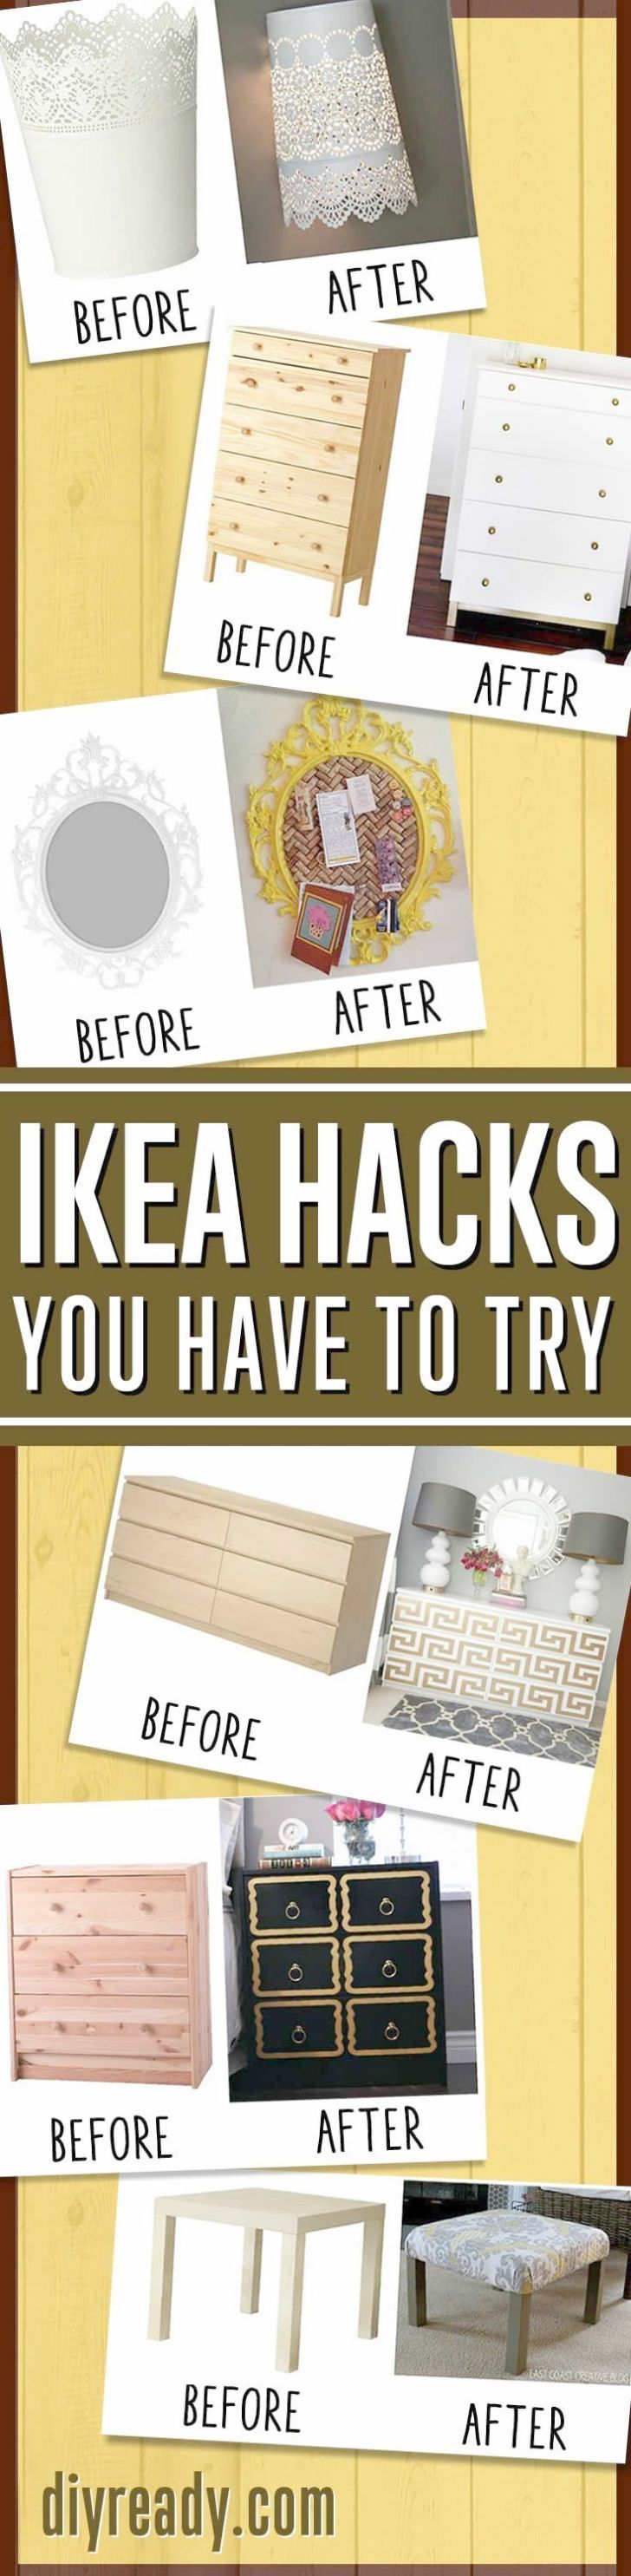 Diy Home Decor Ideas  Ikea Hacks Awesome Home Decor